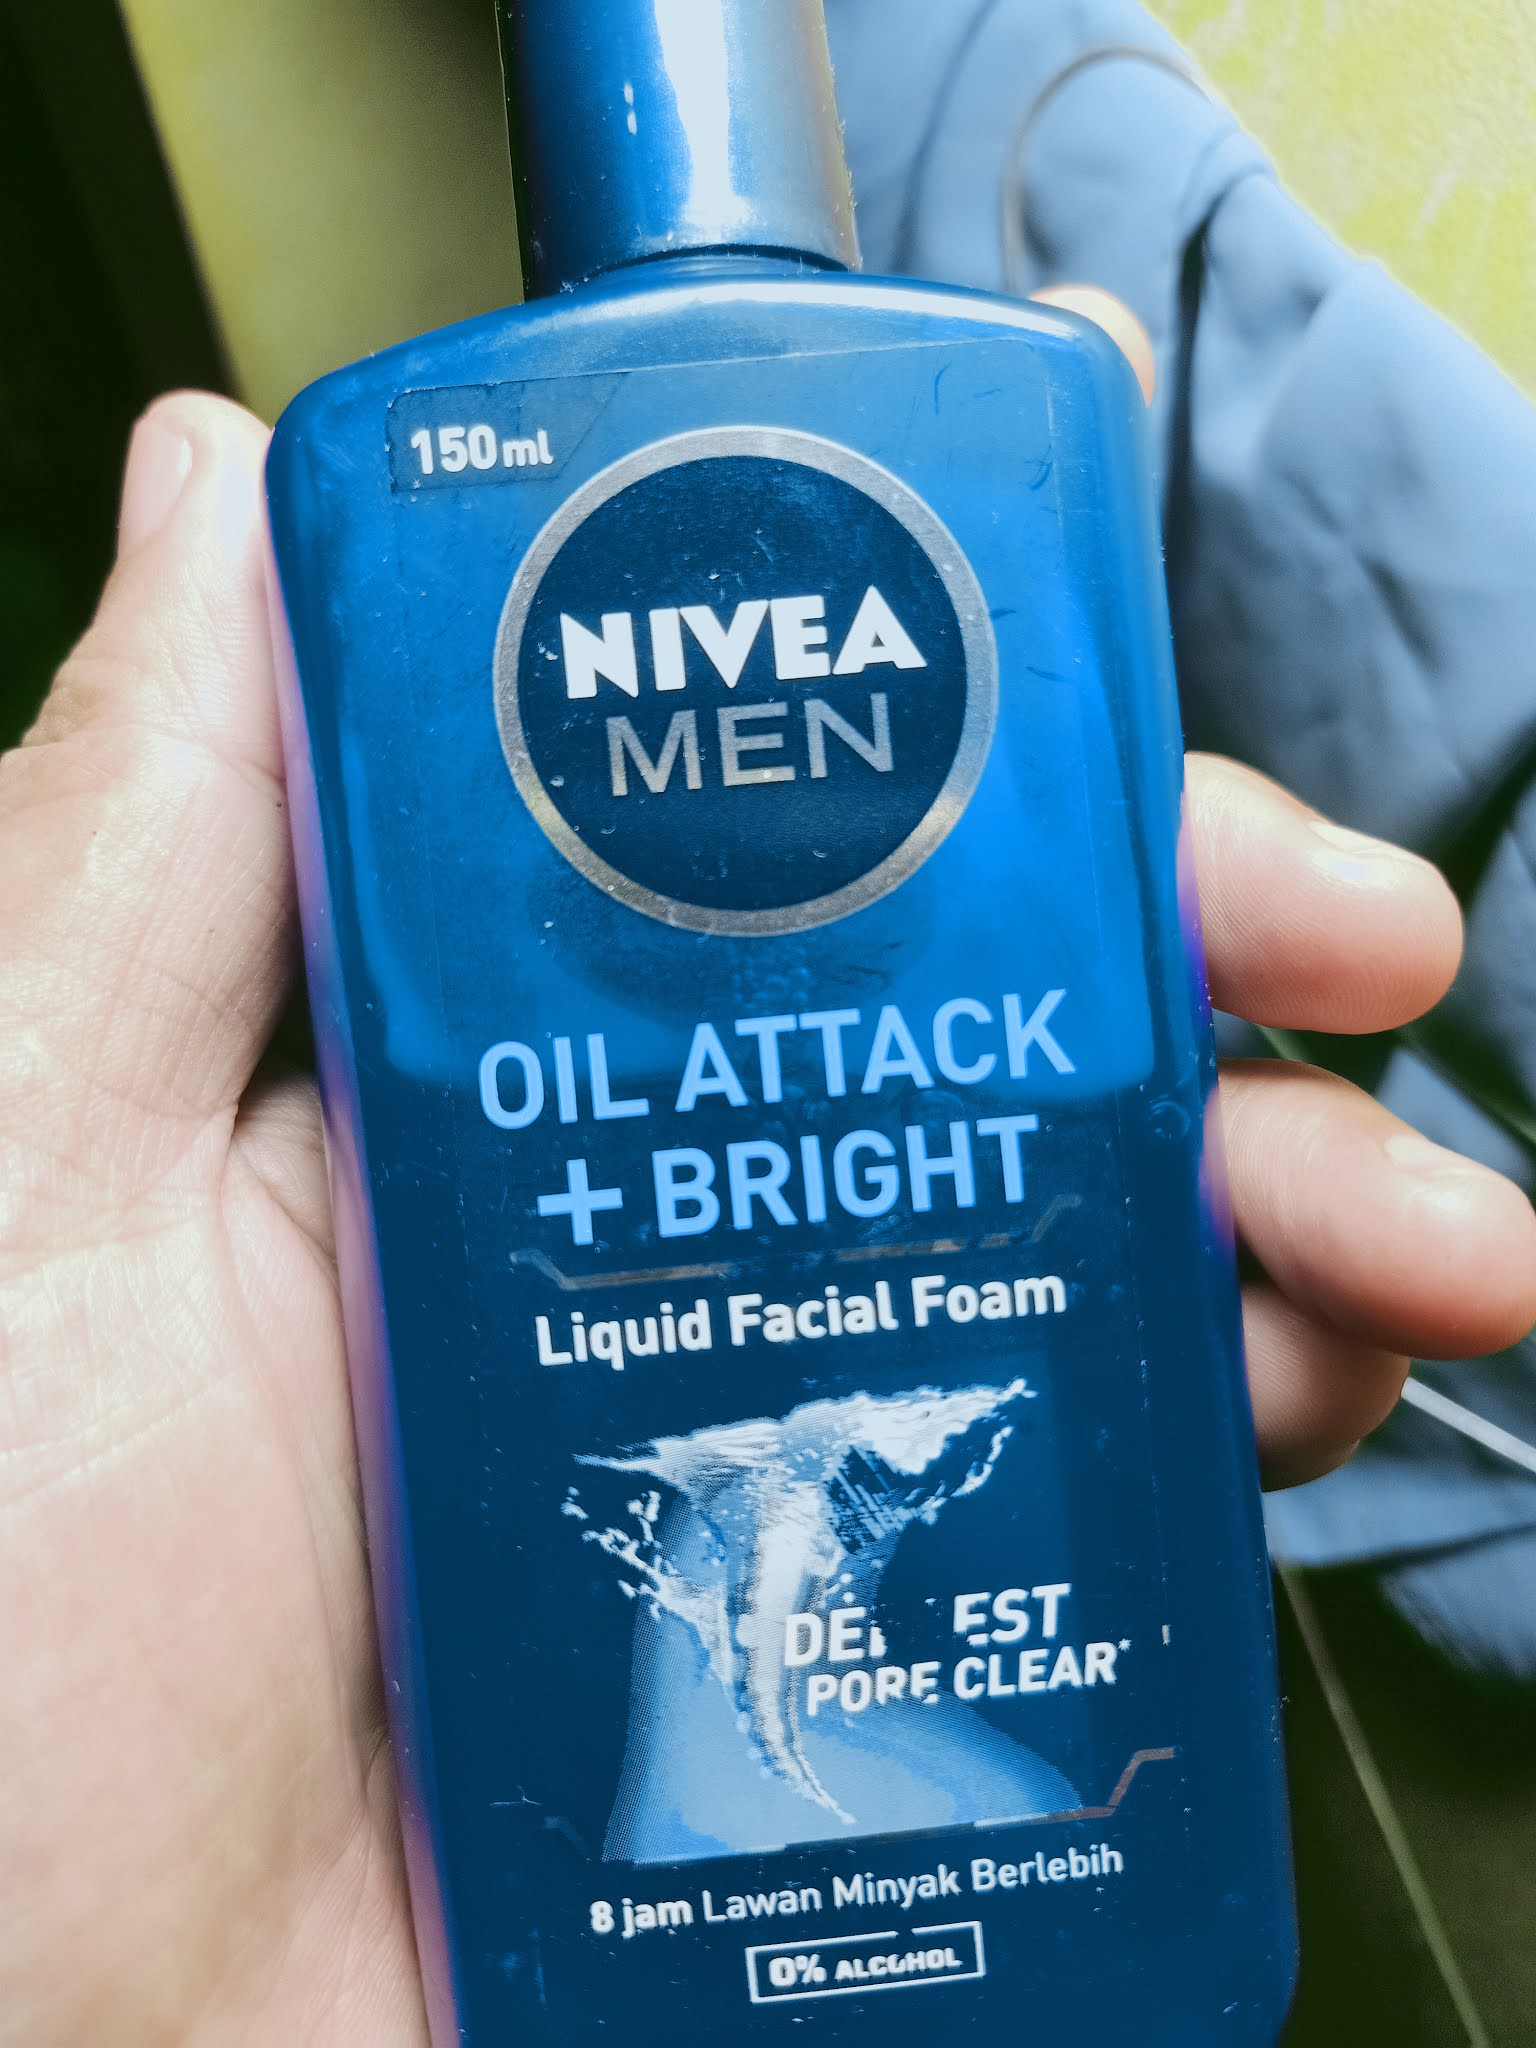 NIVEA MEN OIL ATTACK wajah bikin segar